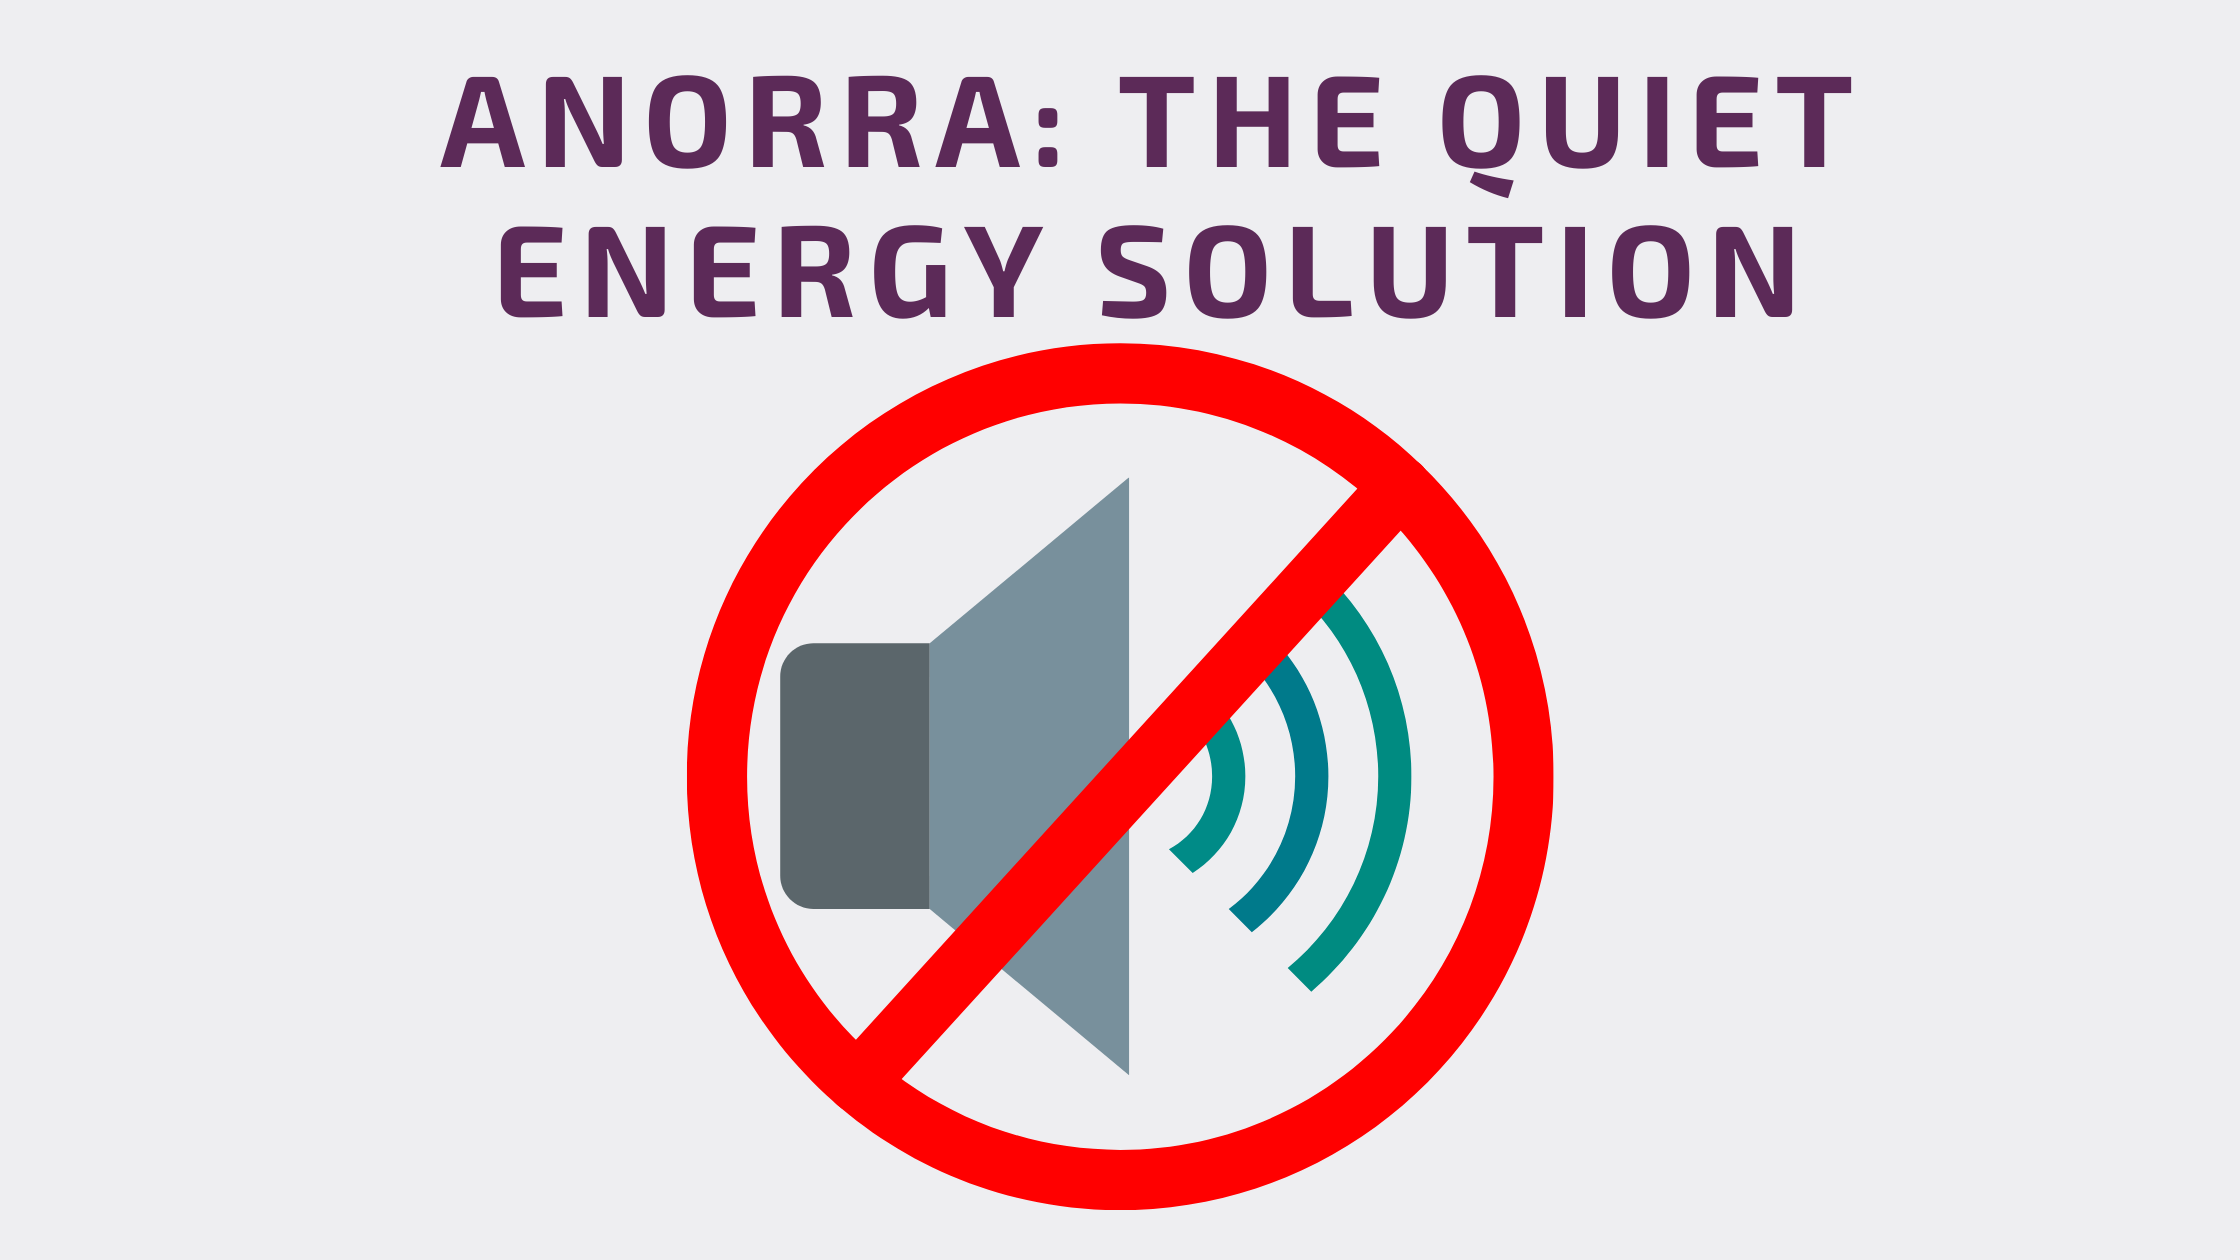 Anorra: The Quiet Energy Solution